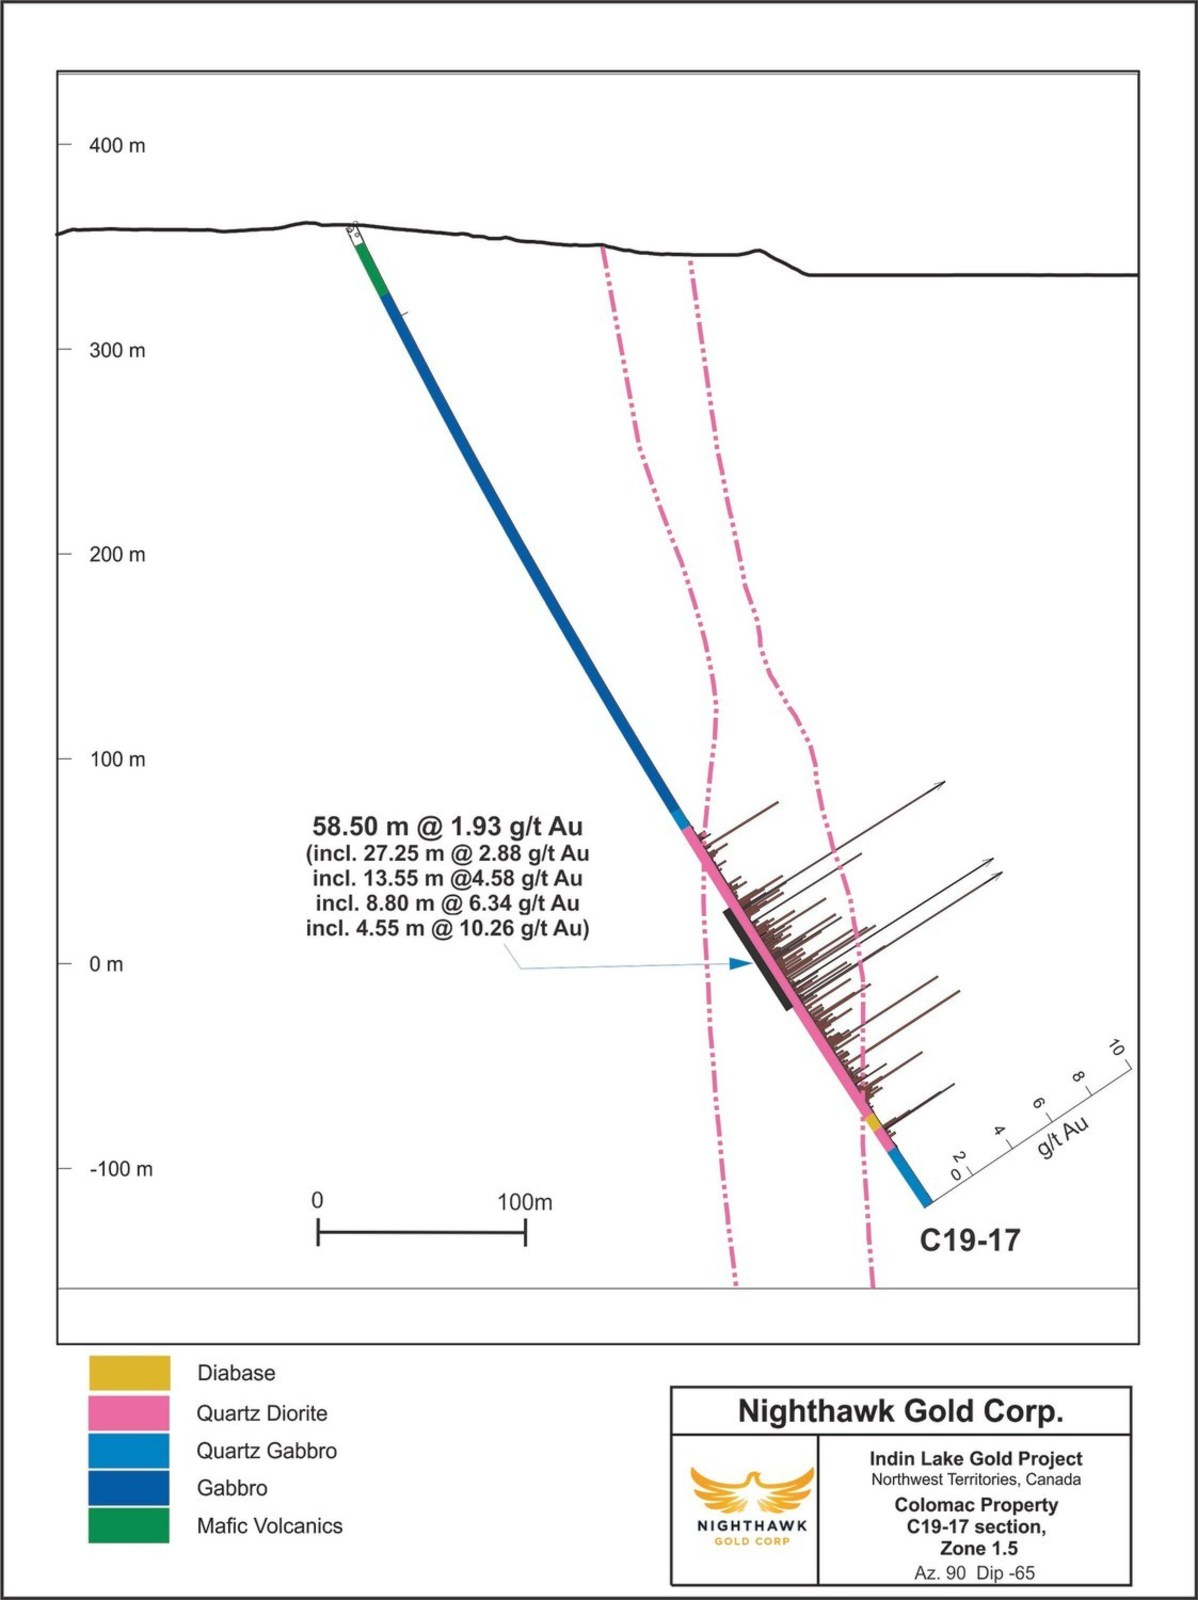 Figure 2. Cross Section - Colomac Zone 1.5 - Drillhole C19-17